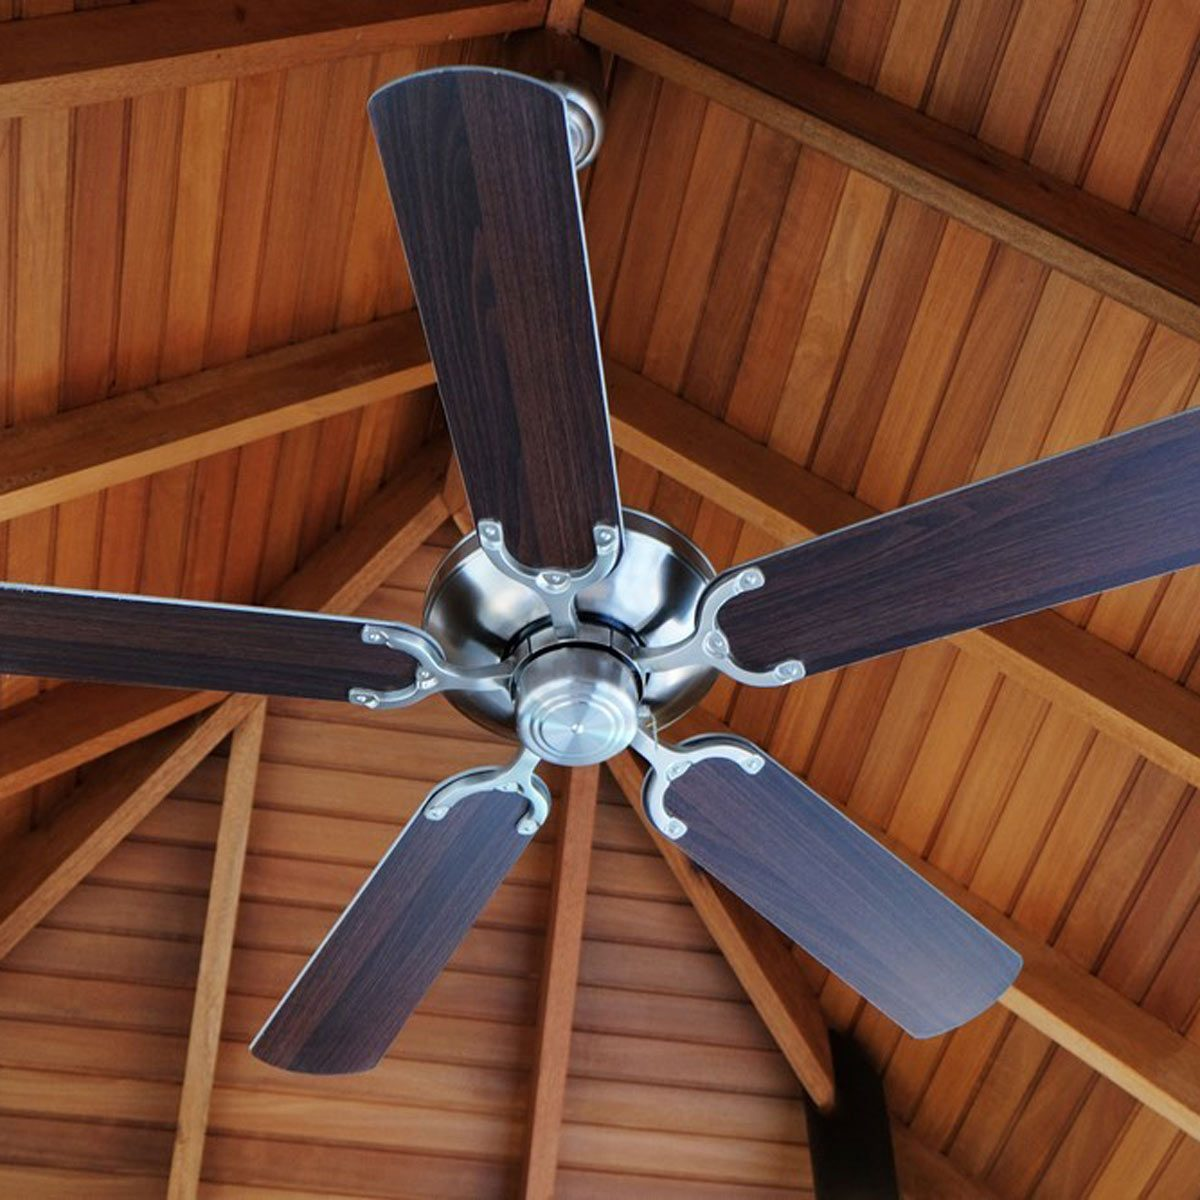 Fix a Wobbly Ceiling Fan